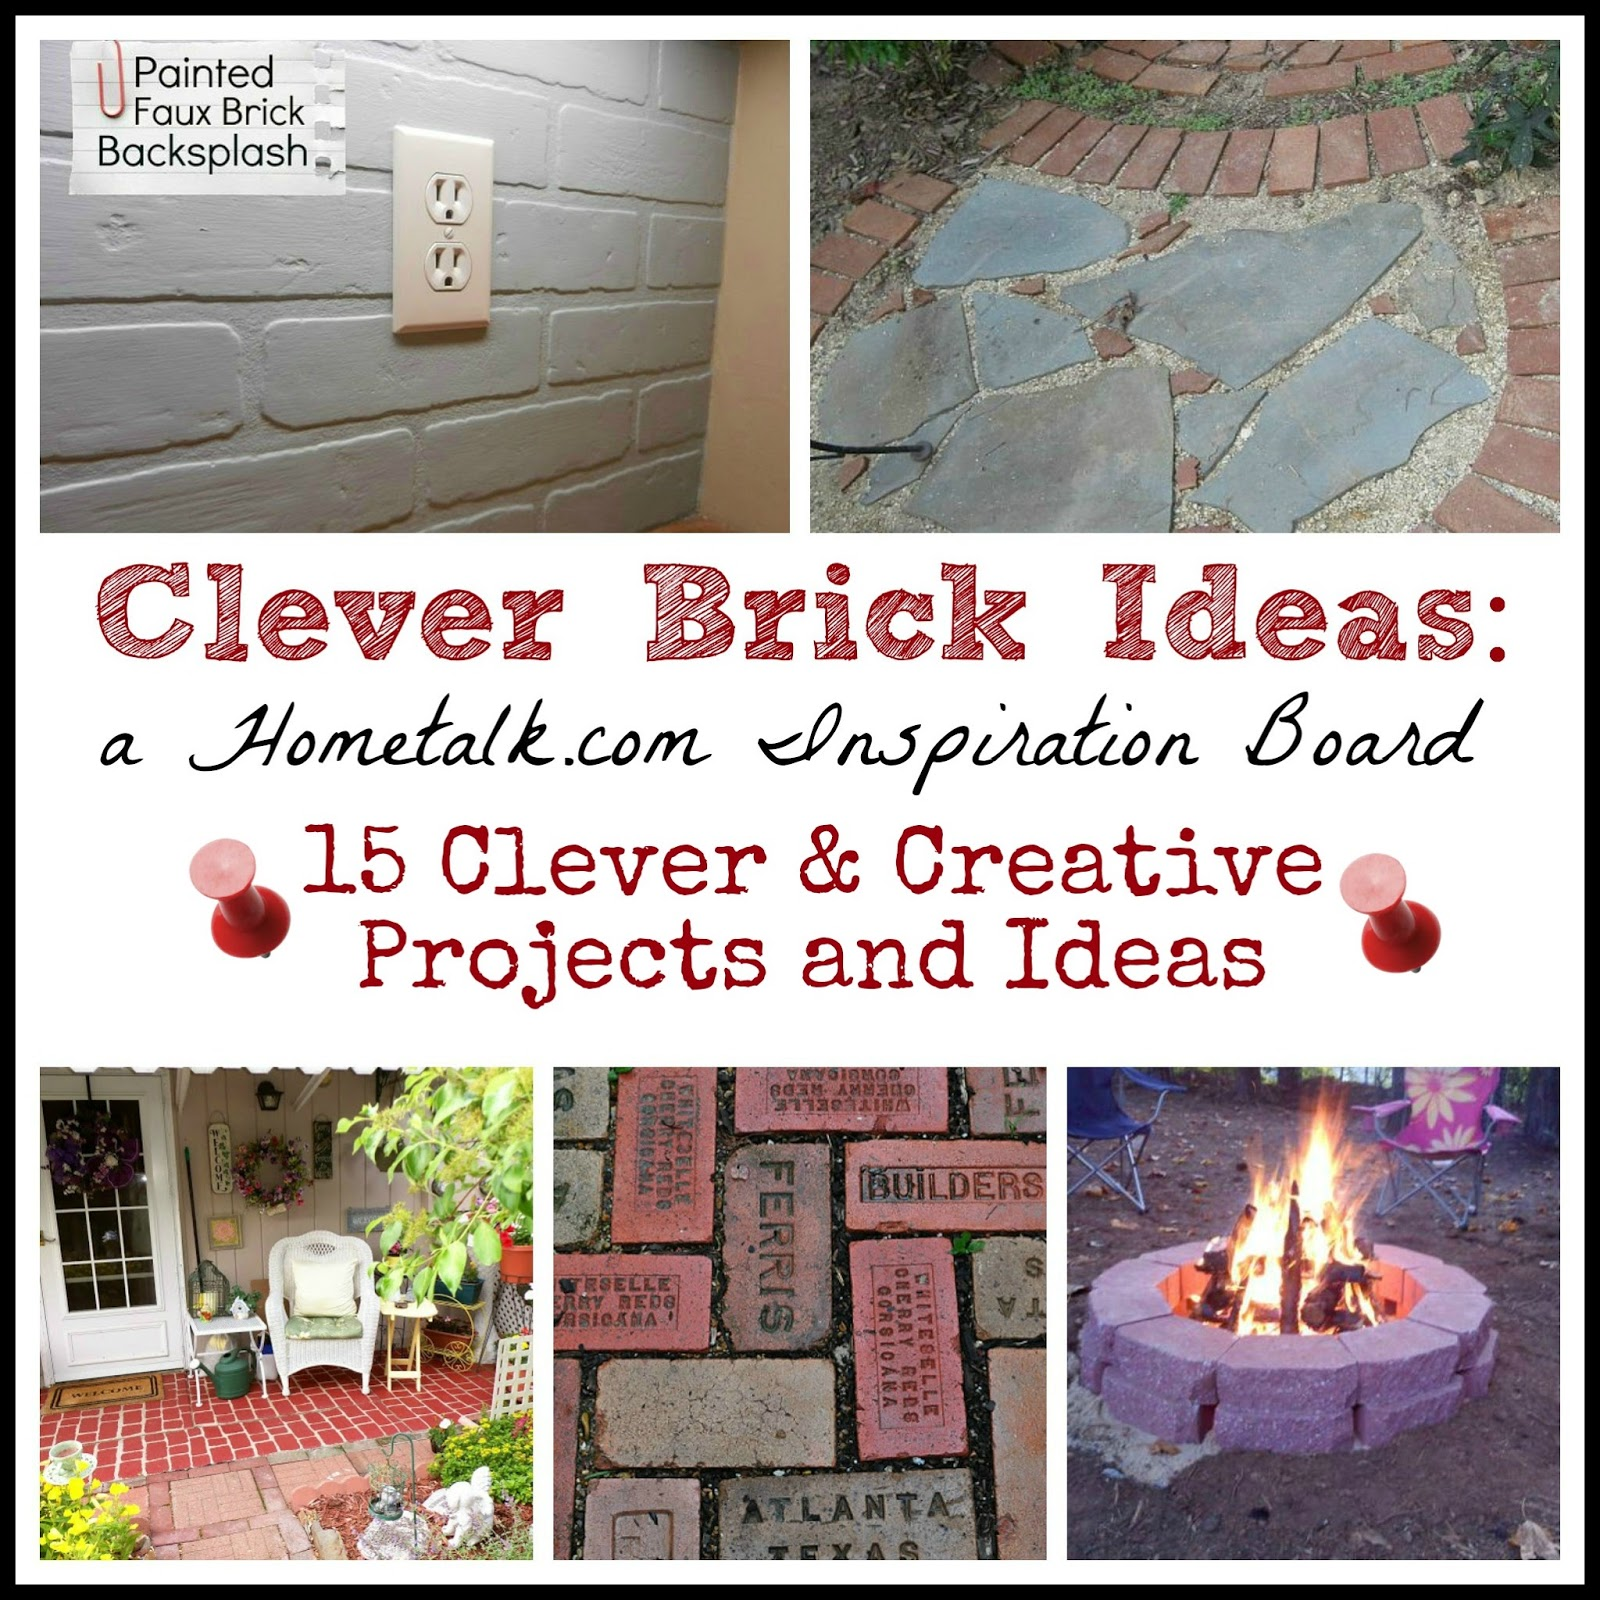 15 Clever Brick Ideas at The Everyday Home